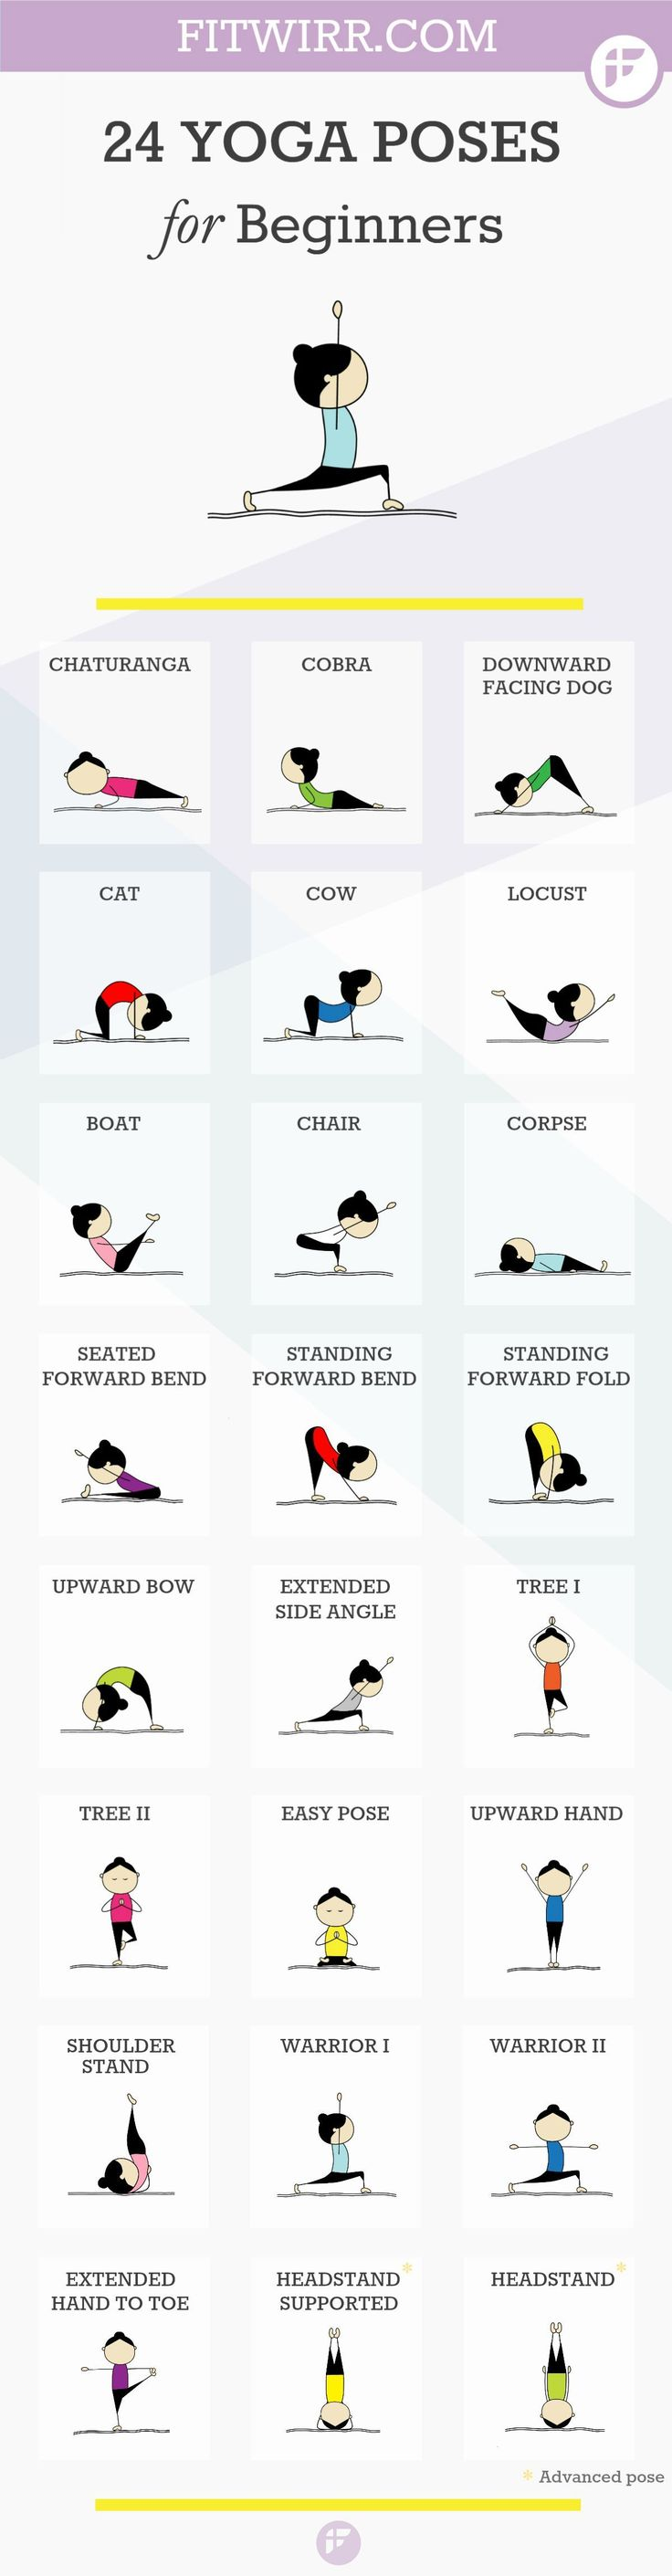 Worksheets Cow Eye Dissection Worksheet Answers best 25 meditation ideas on pinterest mindfullness 24 beginners yoga poses you can start with at home